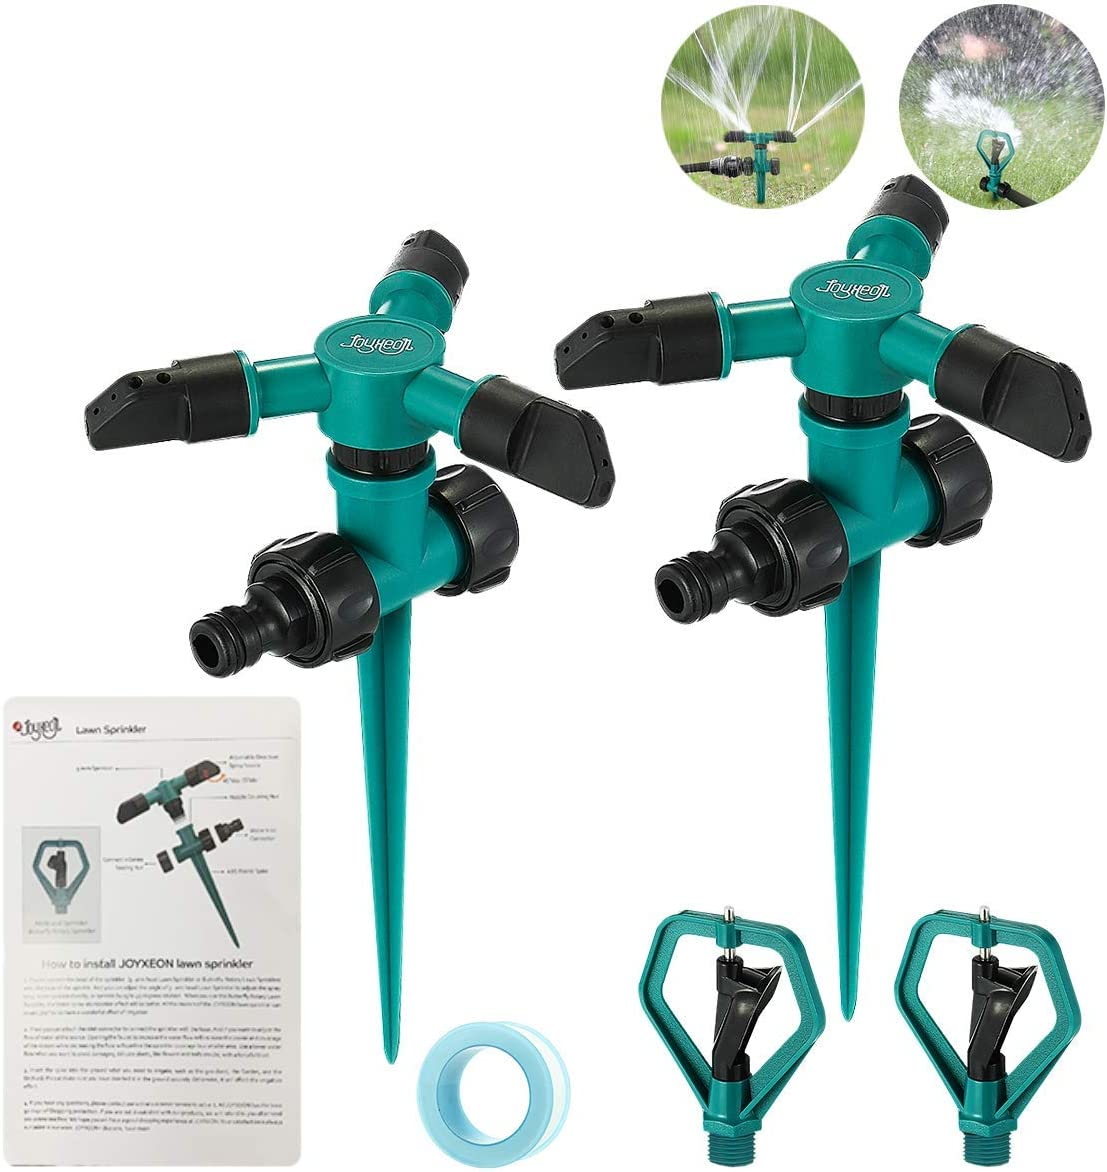 JOYXEON Lawn Sprinkler (Set of 2) 360 Degree Automatically Rotating Sprinklers for Garden with 2 pcs Butterfly Rotary Sprinklers Rotating Irrigation System for Garden Yard Kids 3,000 Sq. Ft Coverage